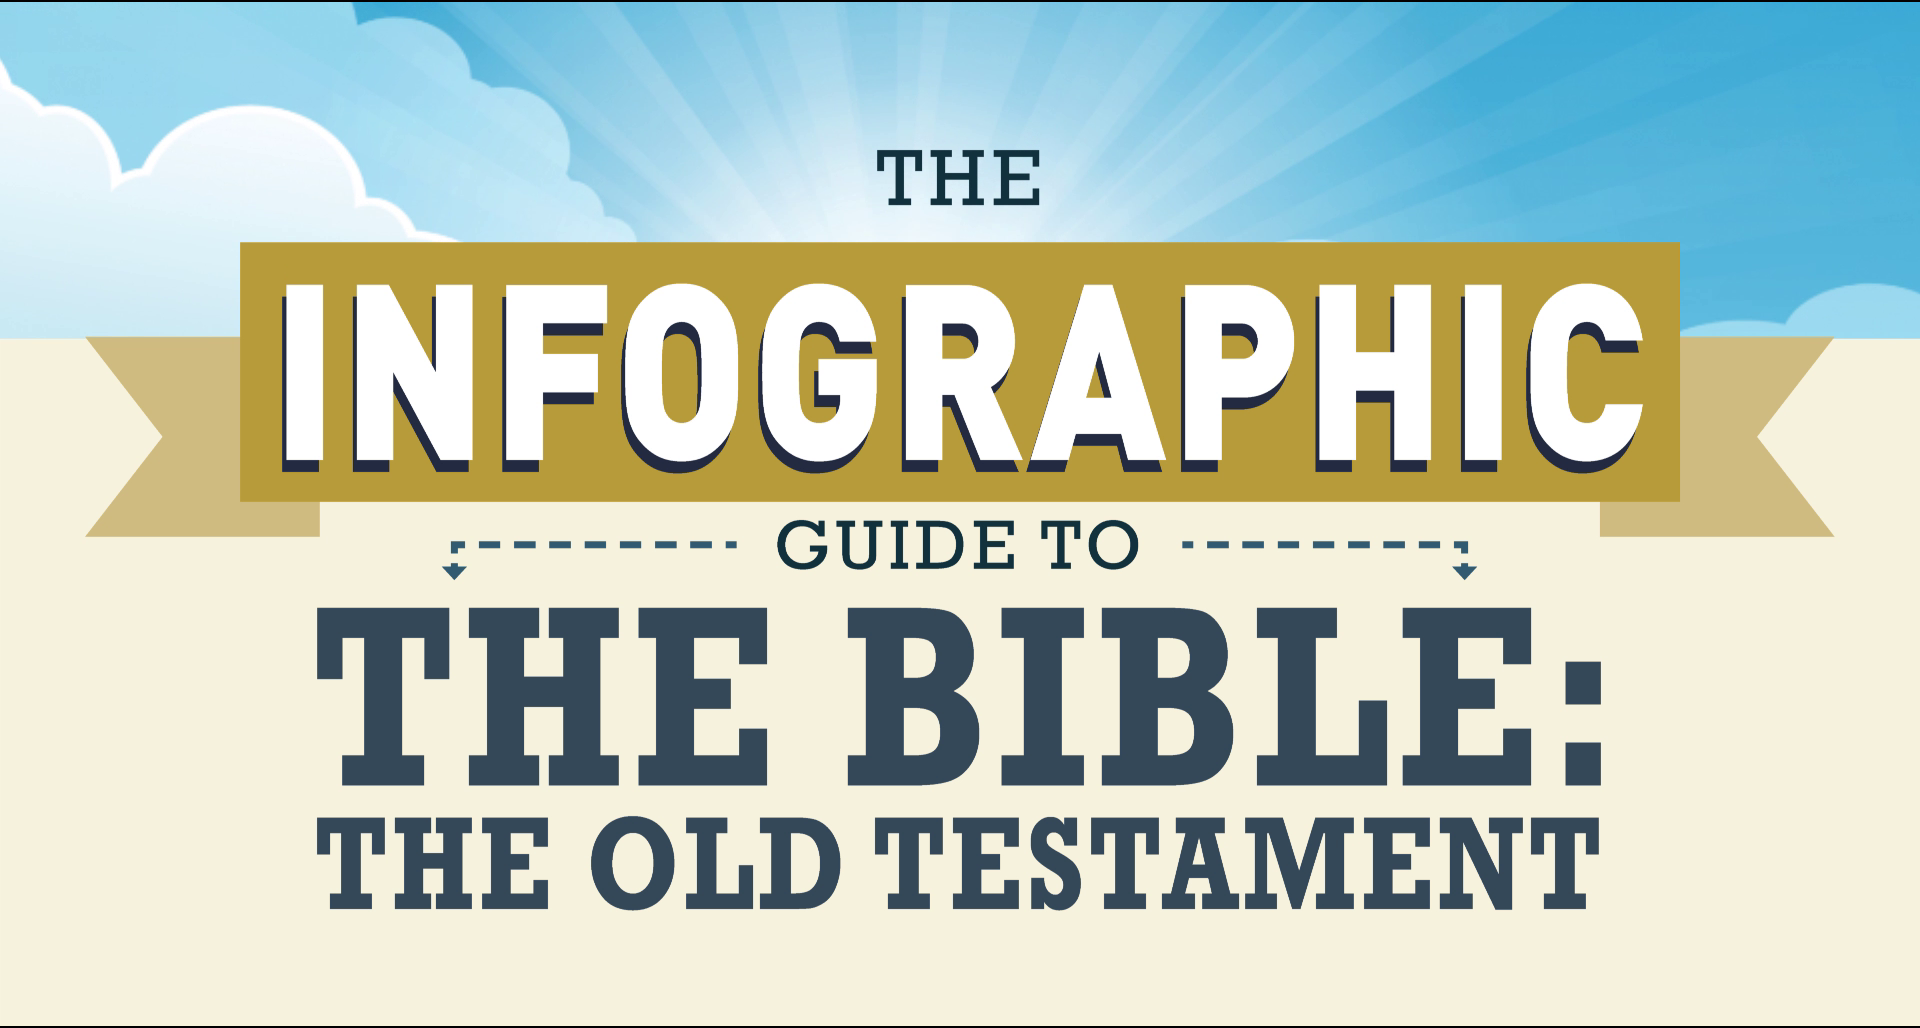 INFOGRAPHIC GUIDE TO THE BIBLE: THE OLD TESTAMENT: NOAH'S ARK BY THE NUMBERS!